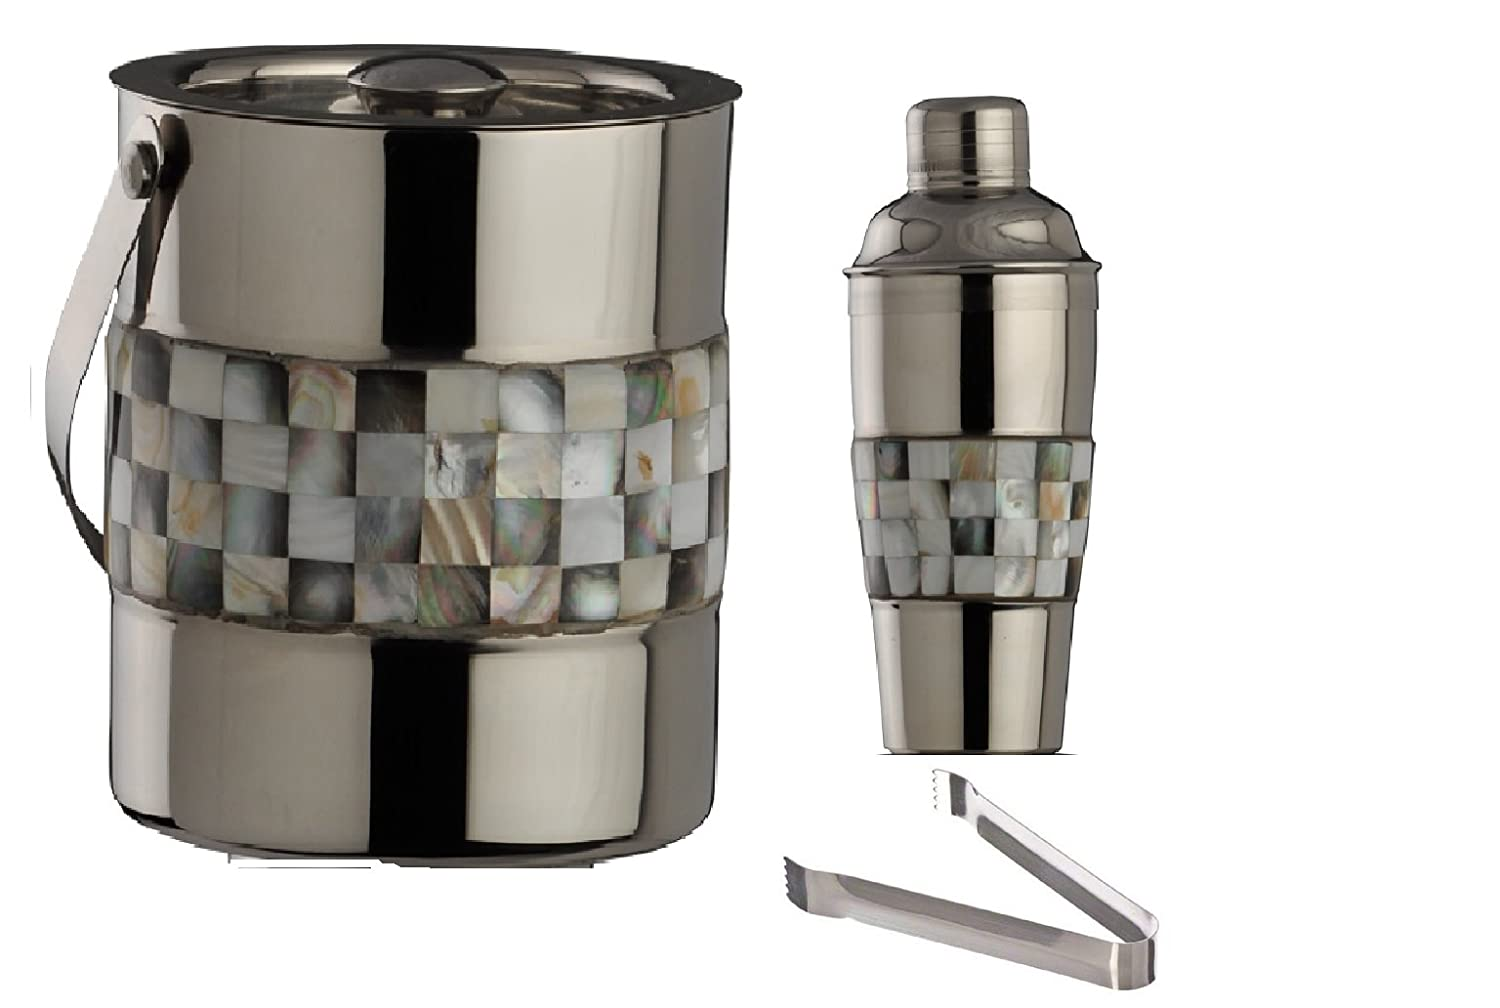 Stainless Steel Double Walled Ice Bucket Cocktail Shaker and Tong Mother of Pearl (MOP) Black and White finish 3 Piece Barware Set